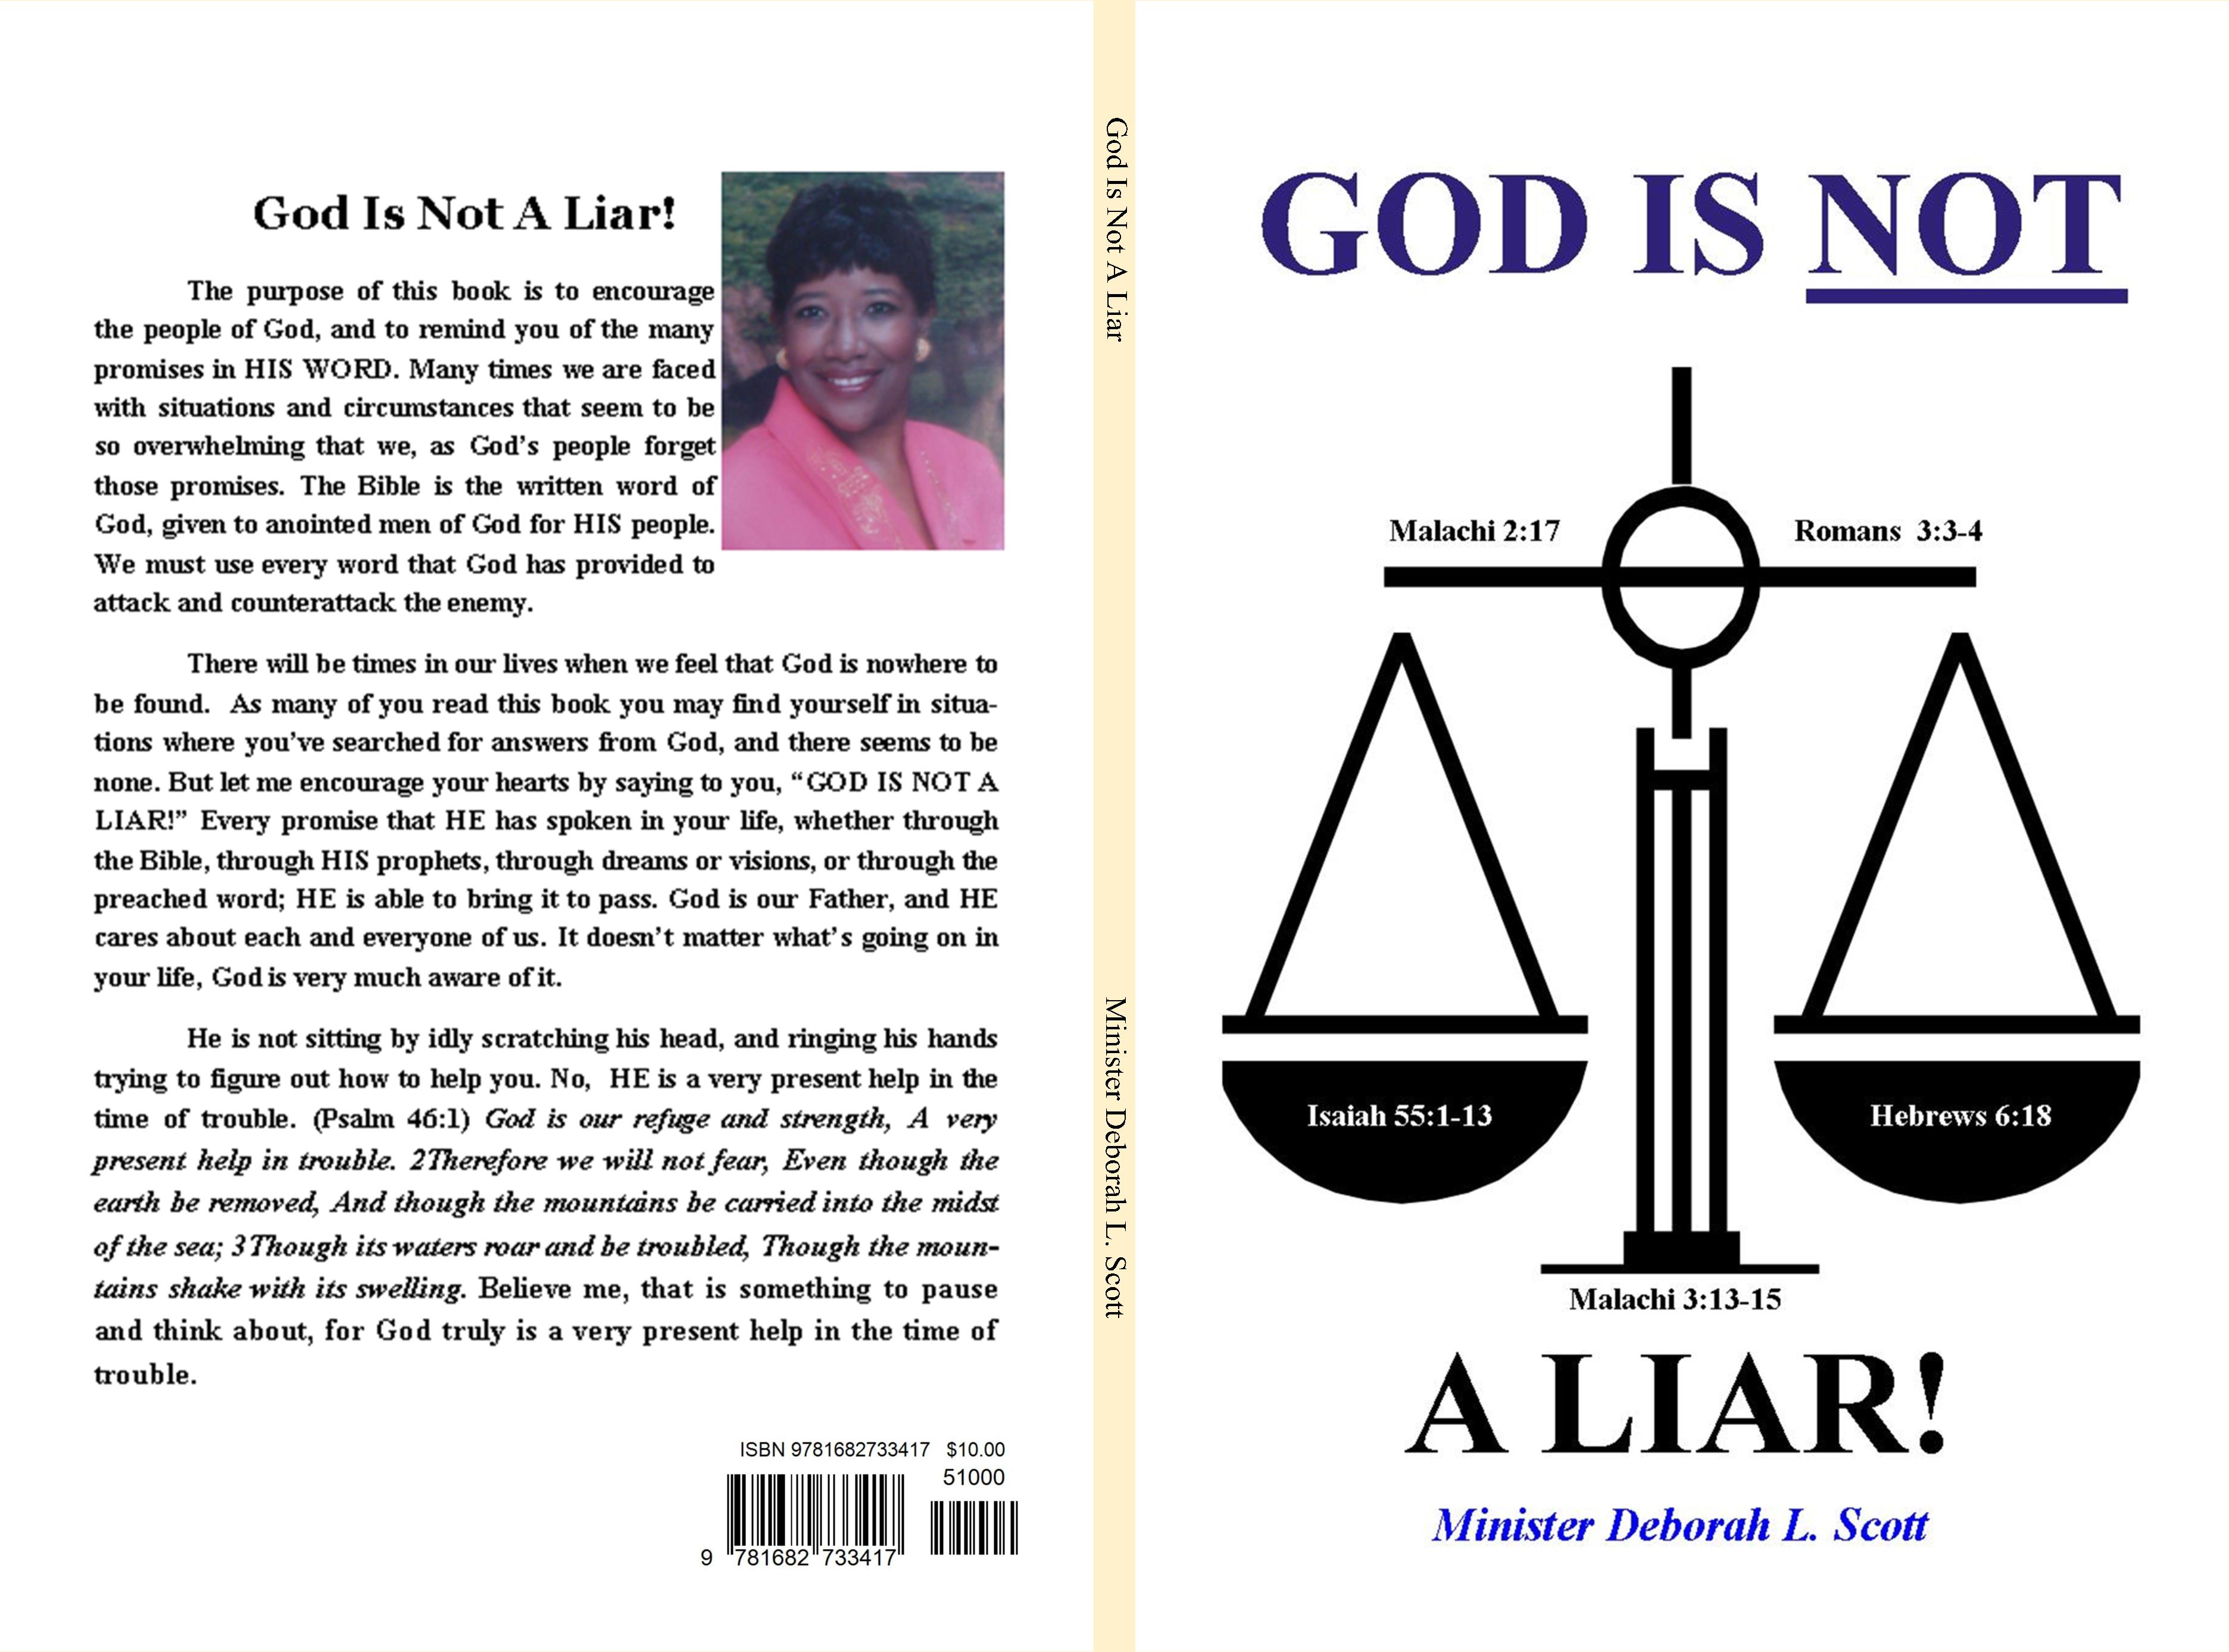 God Is Not A Liar cover image